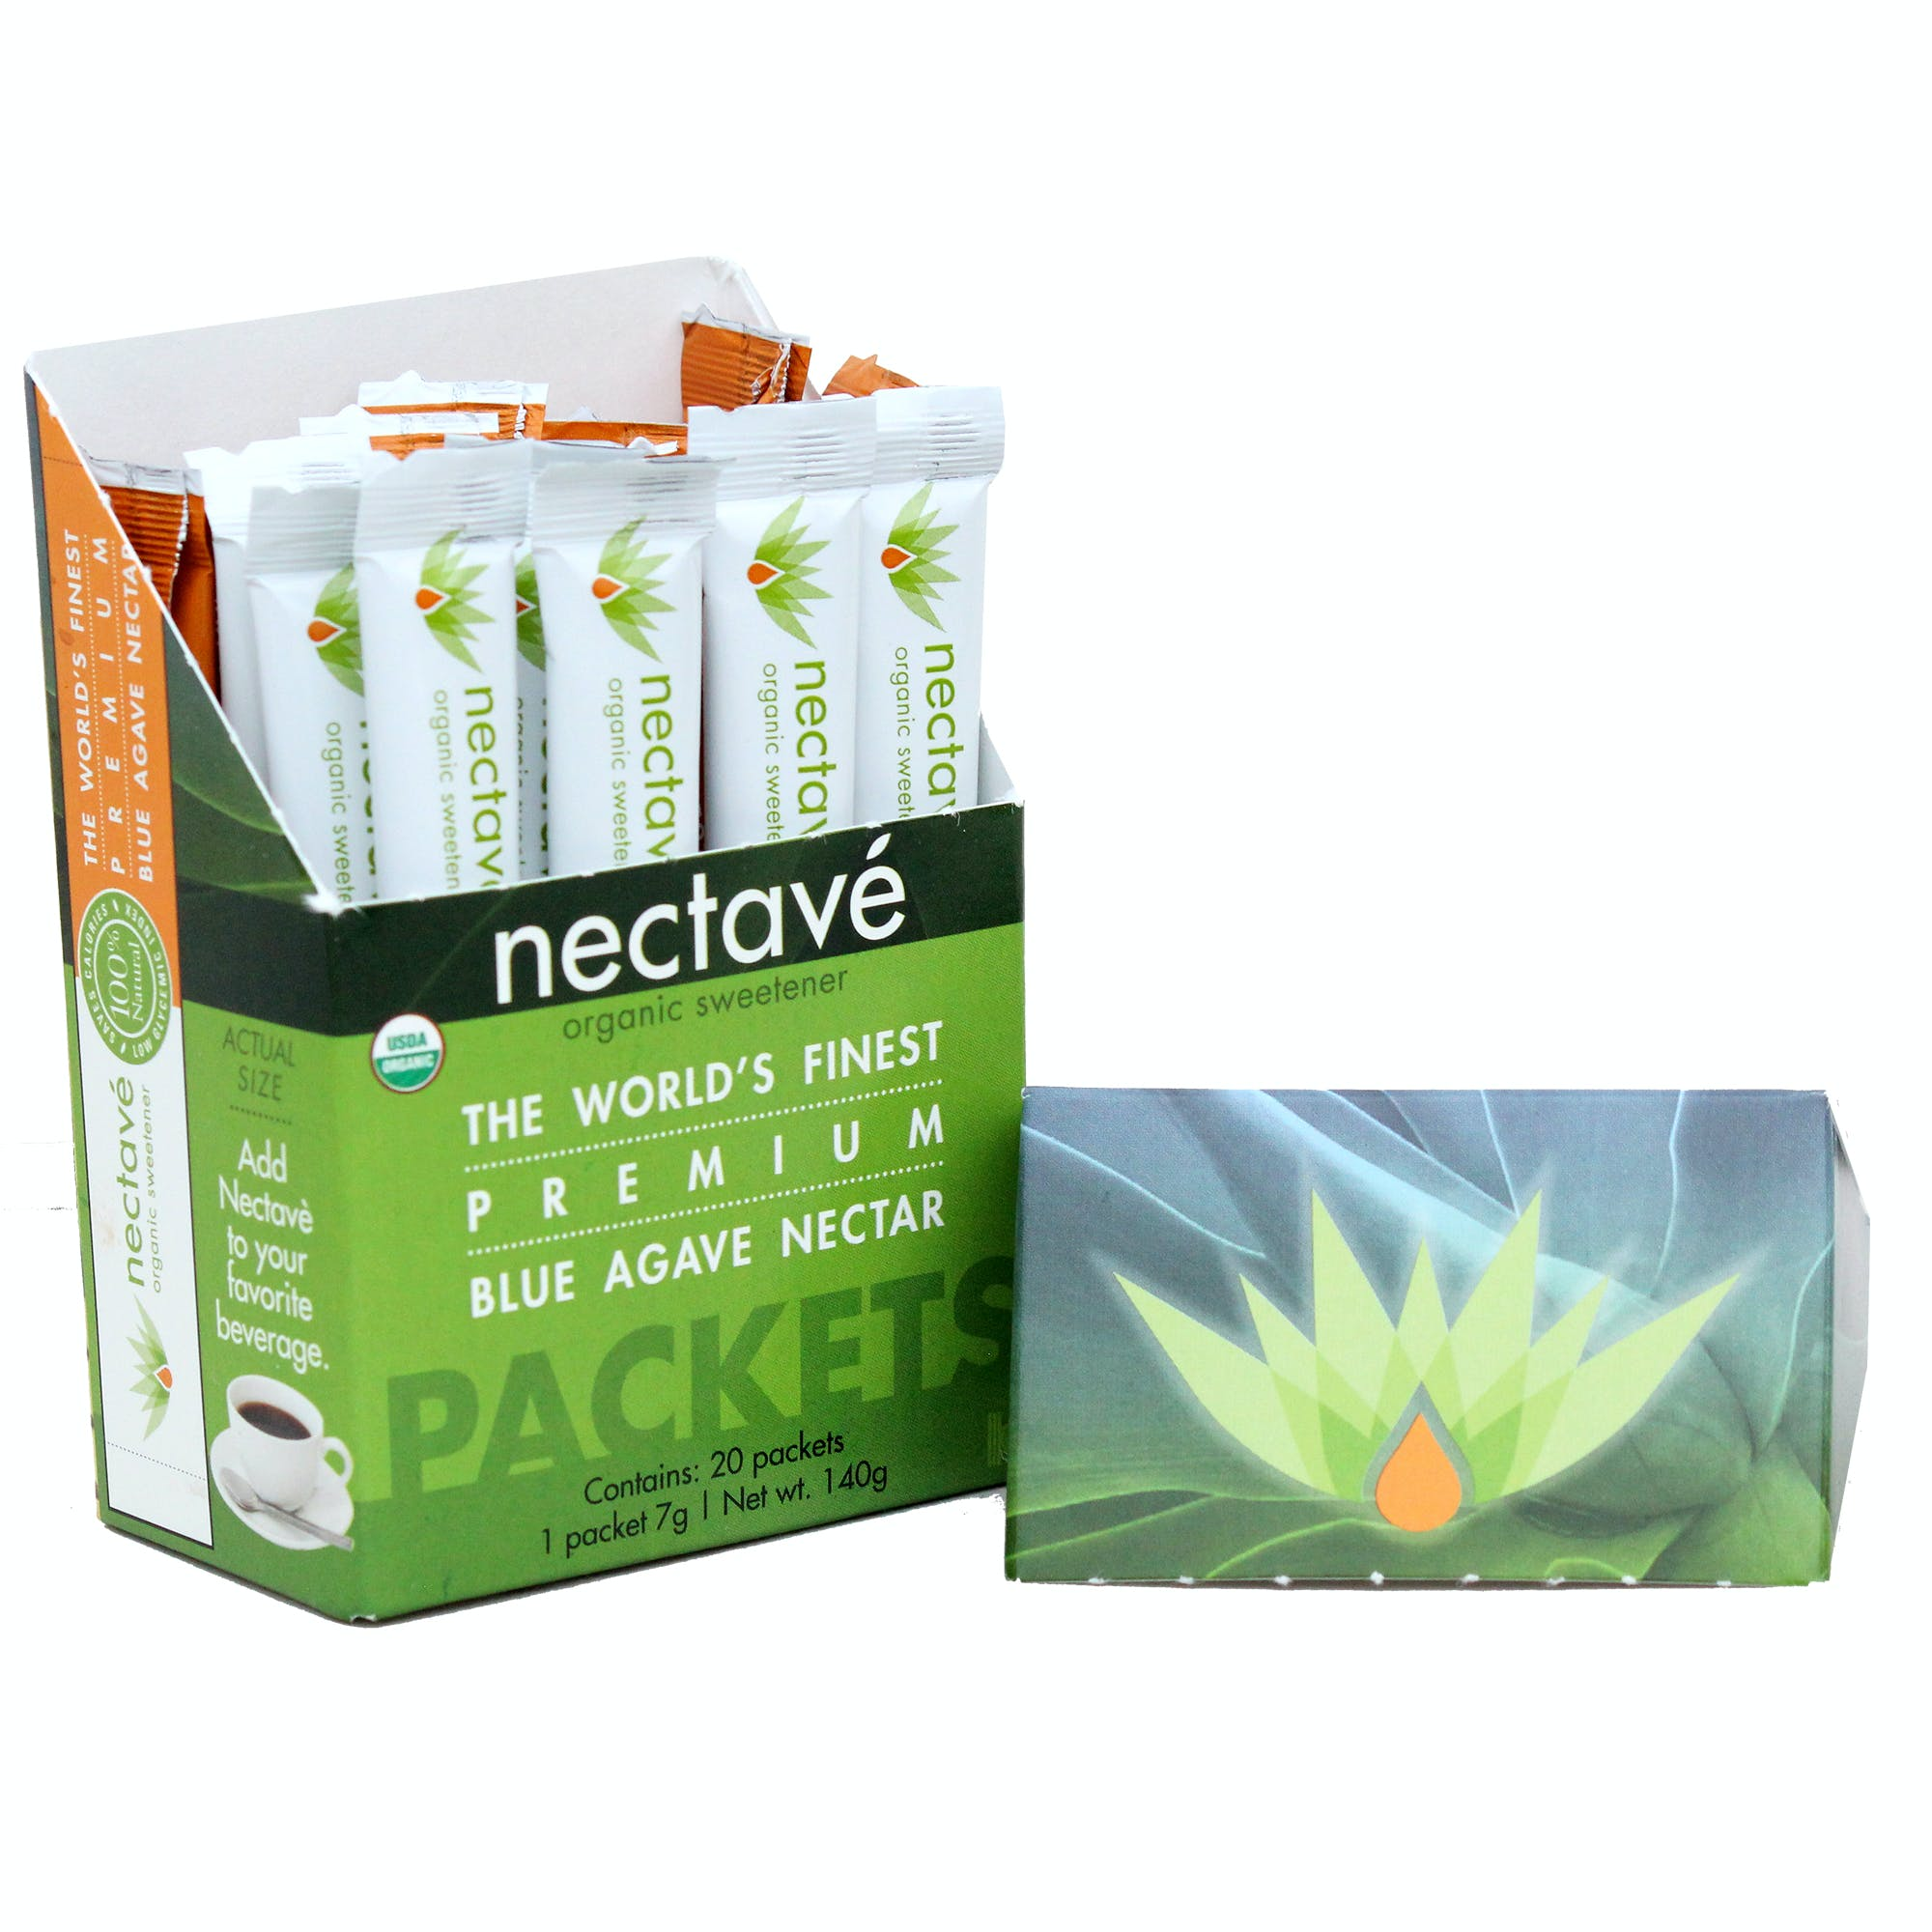 Organic Agave Nectar Personal Sticks Agave sweetener sold by M5 Corporation